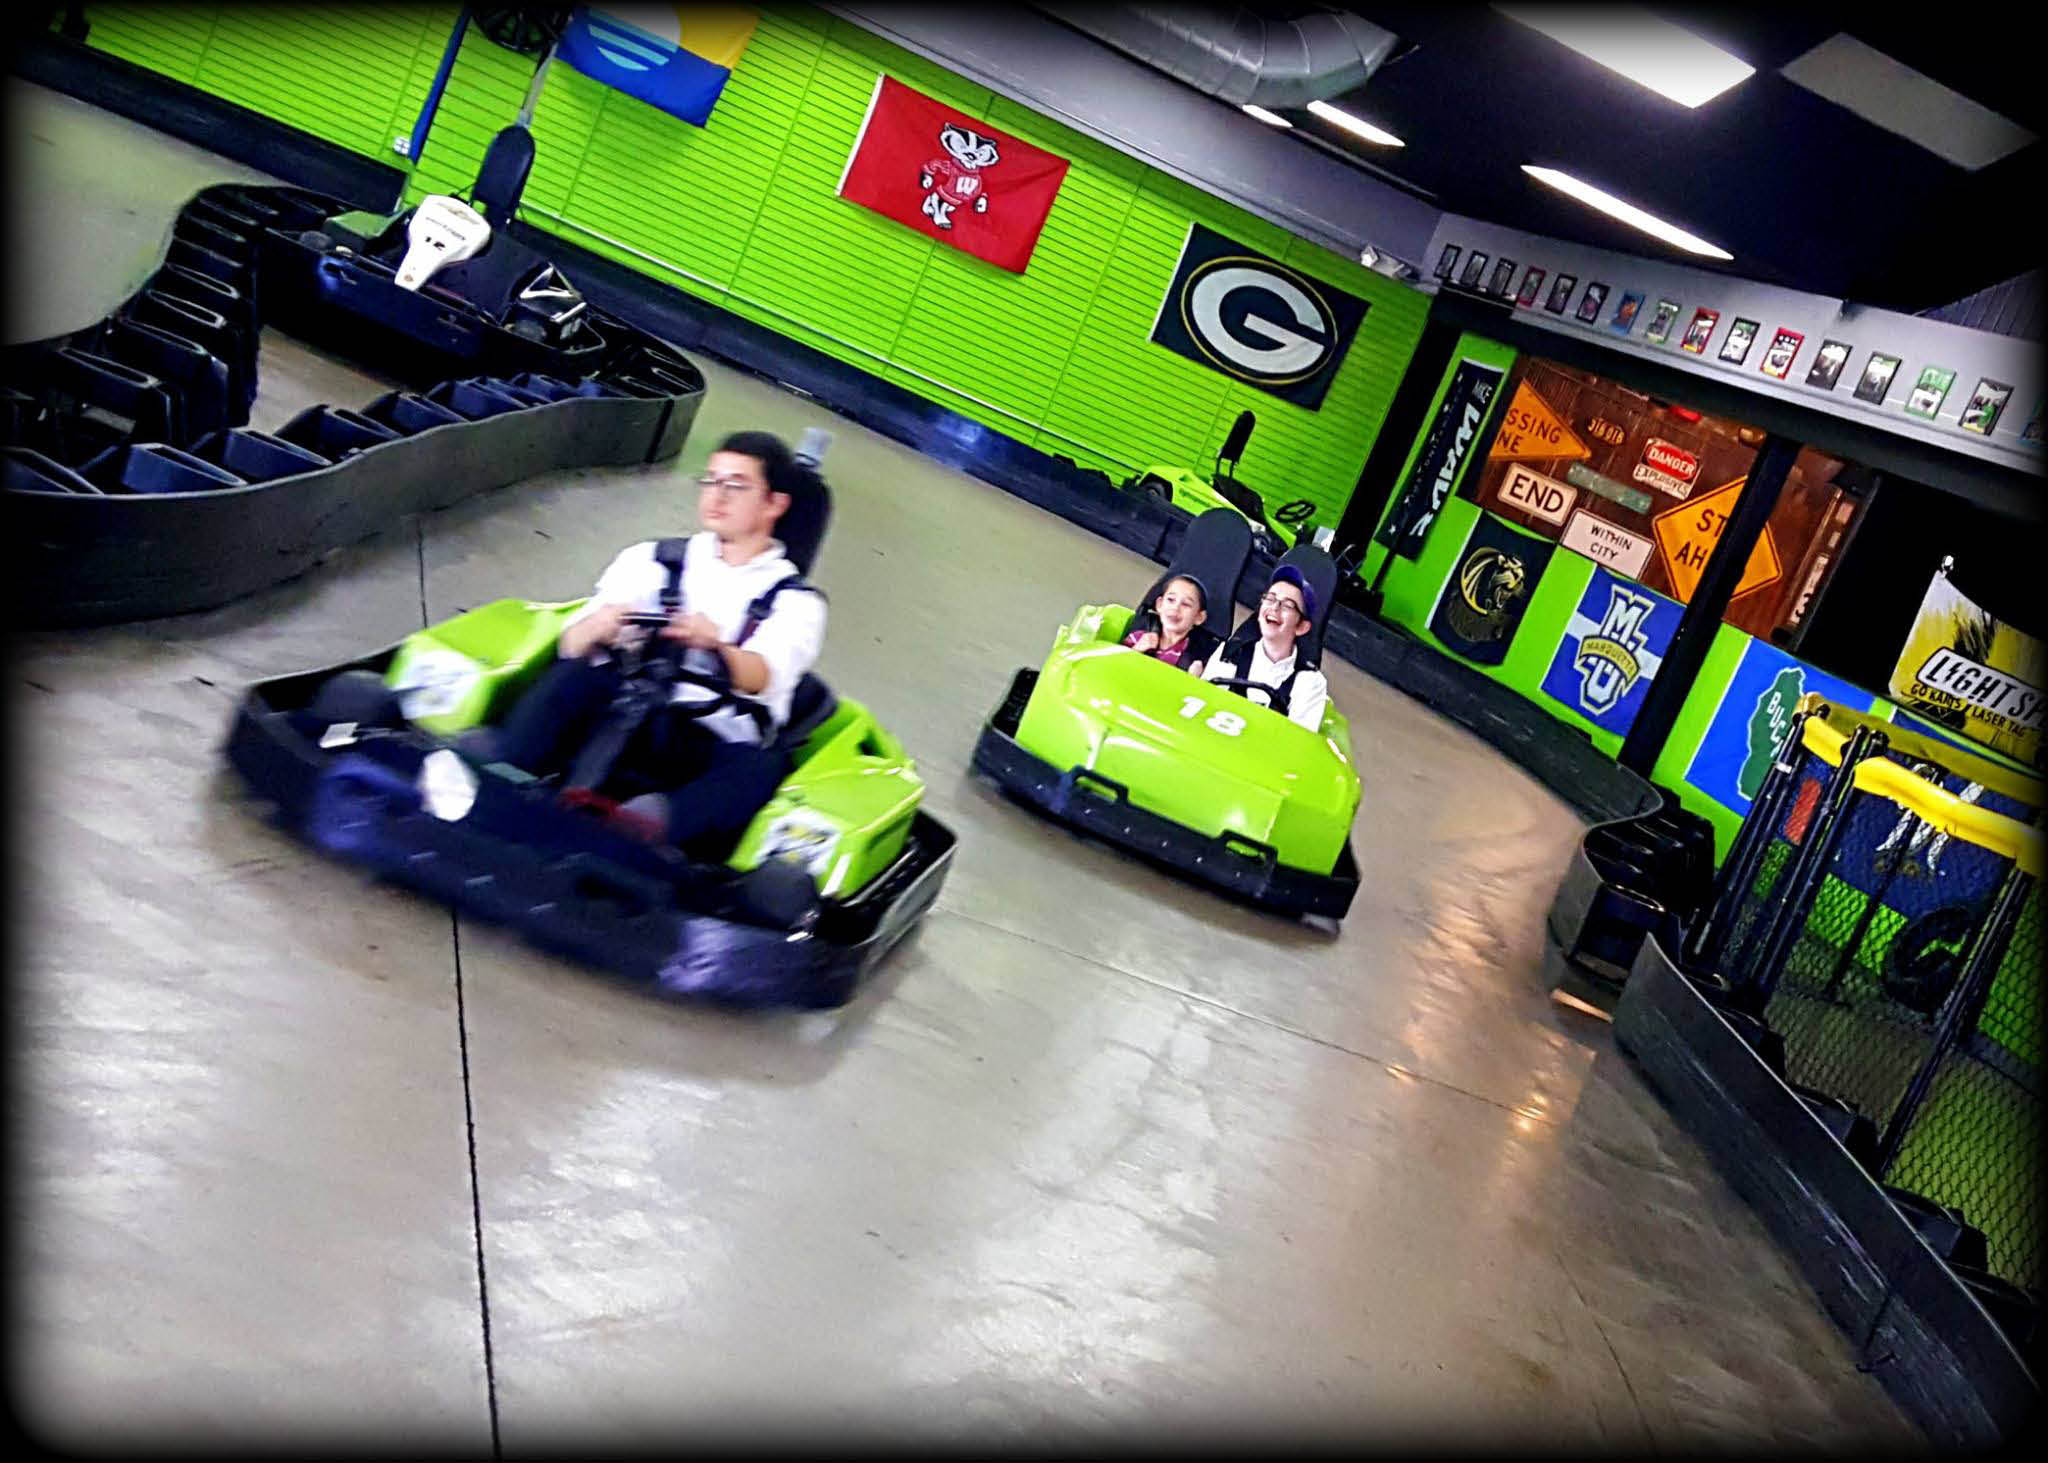 Light Speed Entertainment go carting fun located near Oak Creek, affordable active fun for children, young children specials and families or business team building events in Brookfield, WI